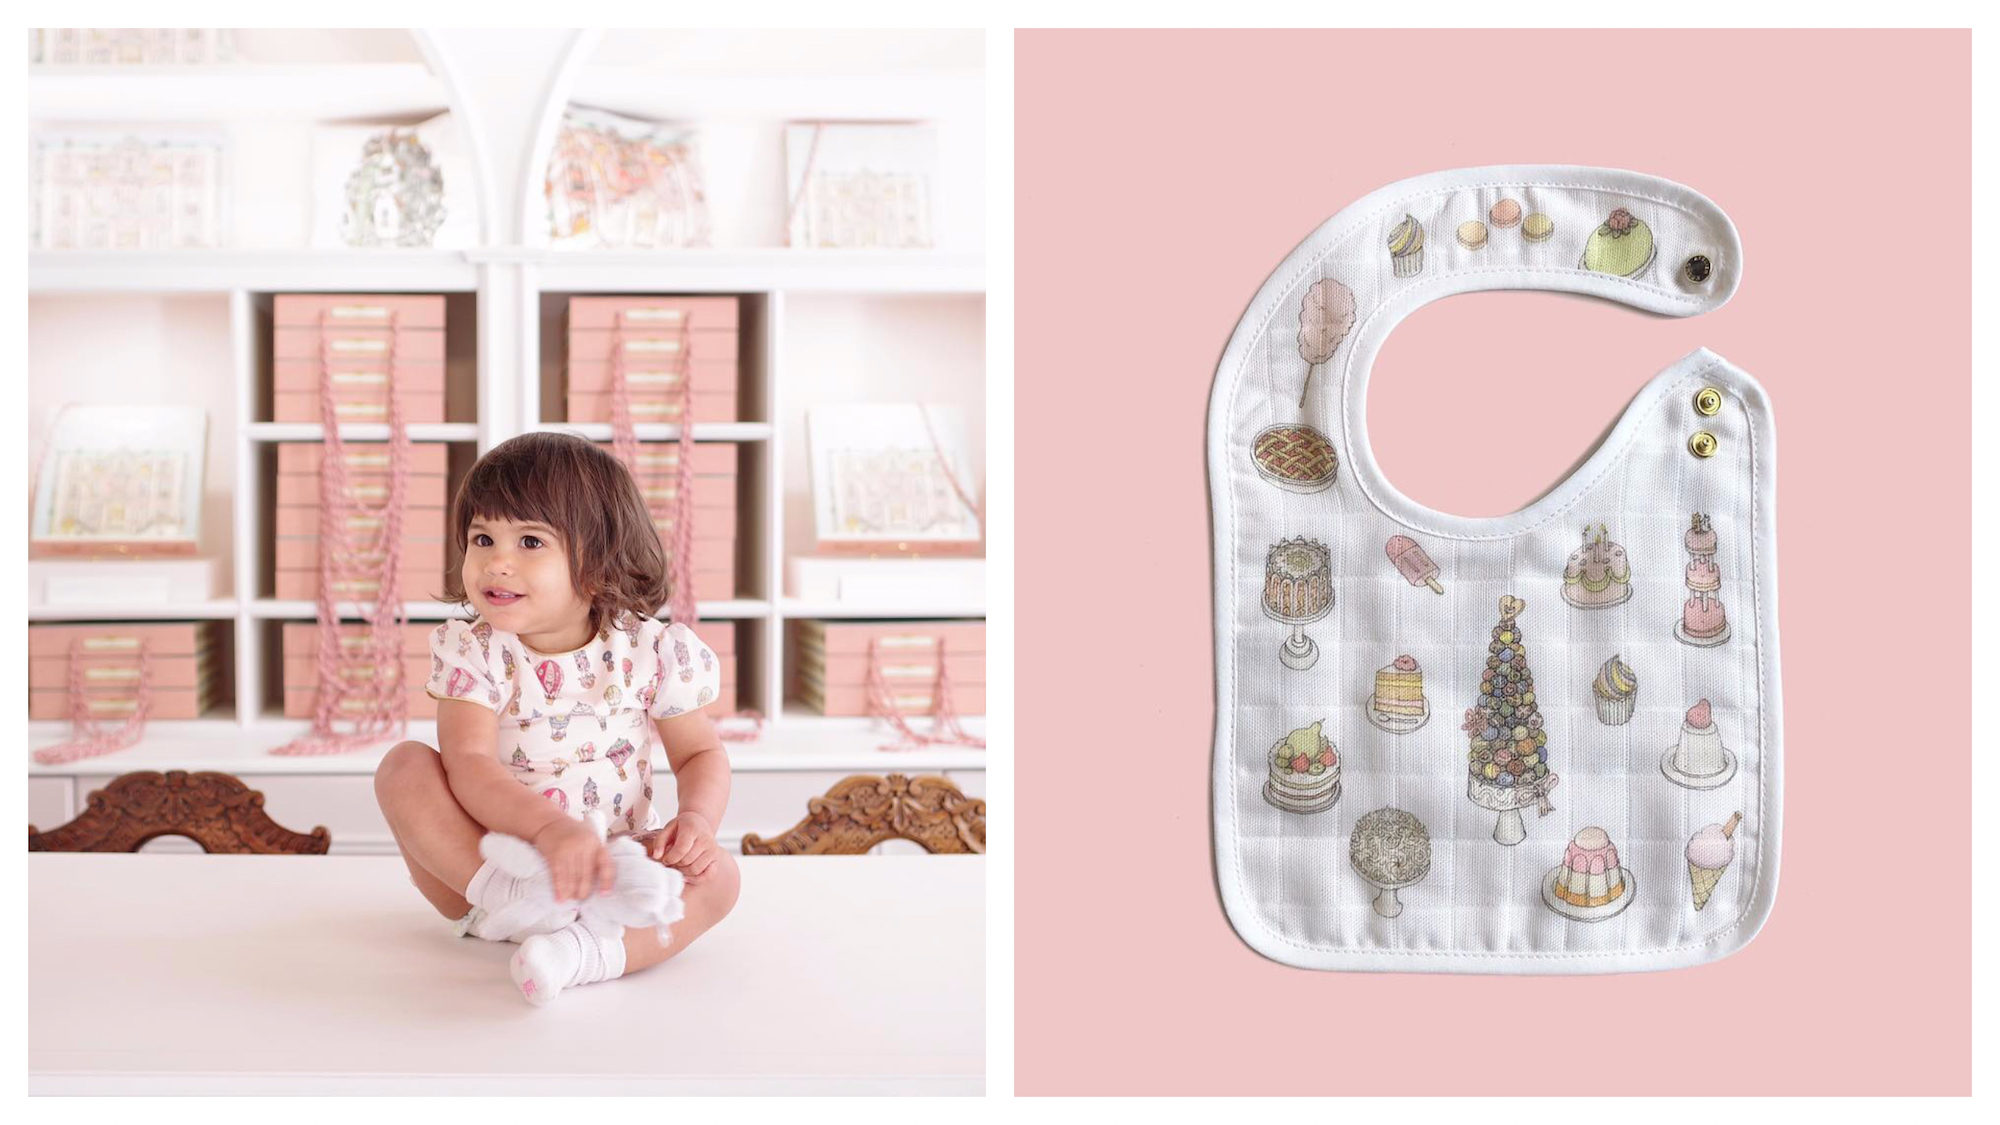 A baby girl sitting the counter of a patisserie wearing a cute outfit from Atelier Choux (left). A bib printed with cute pictures of cakes and ice creams (right).